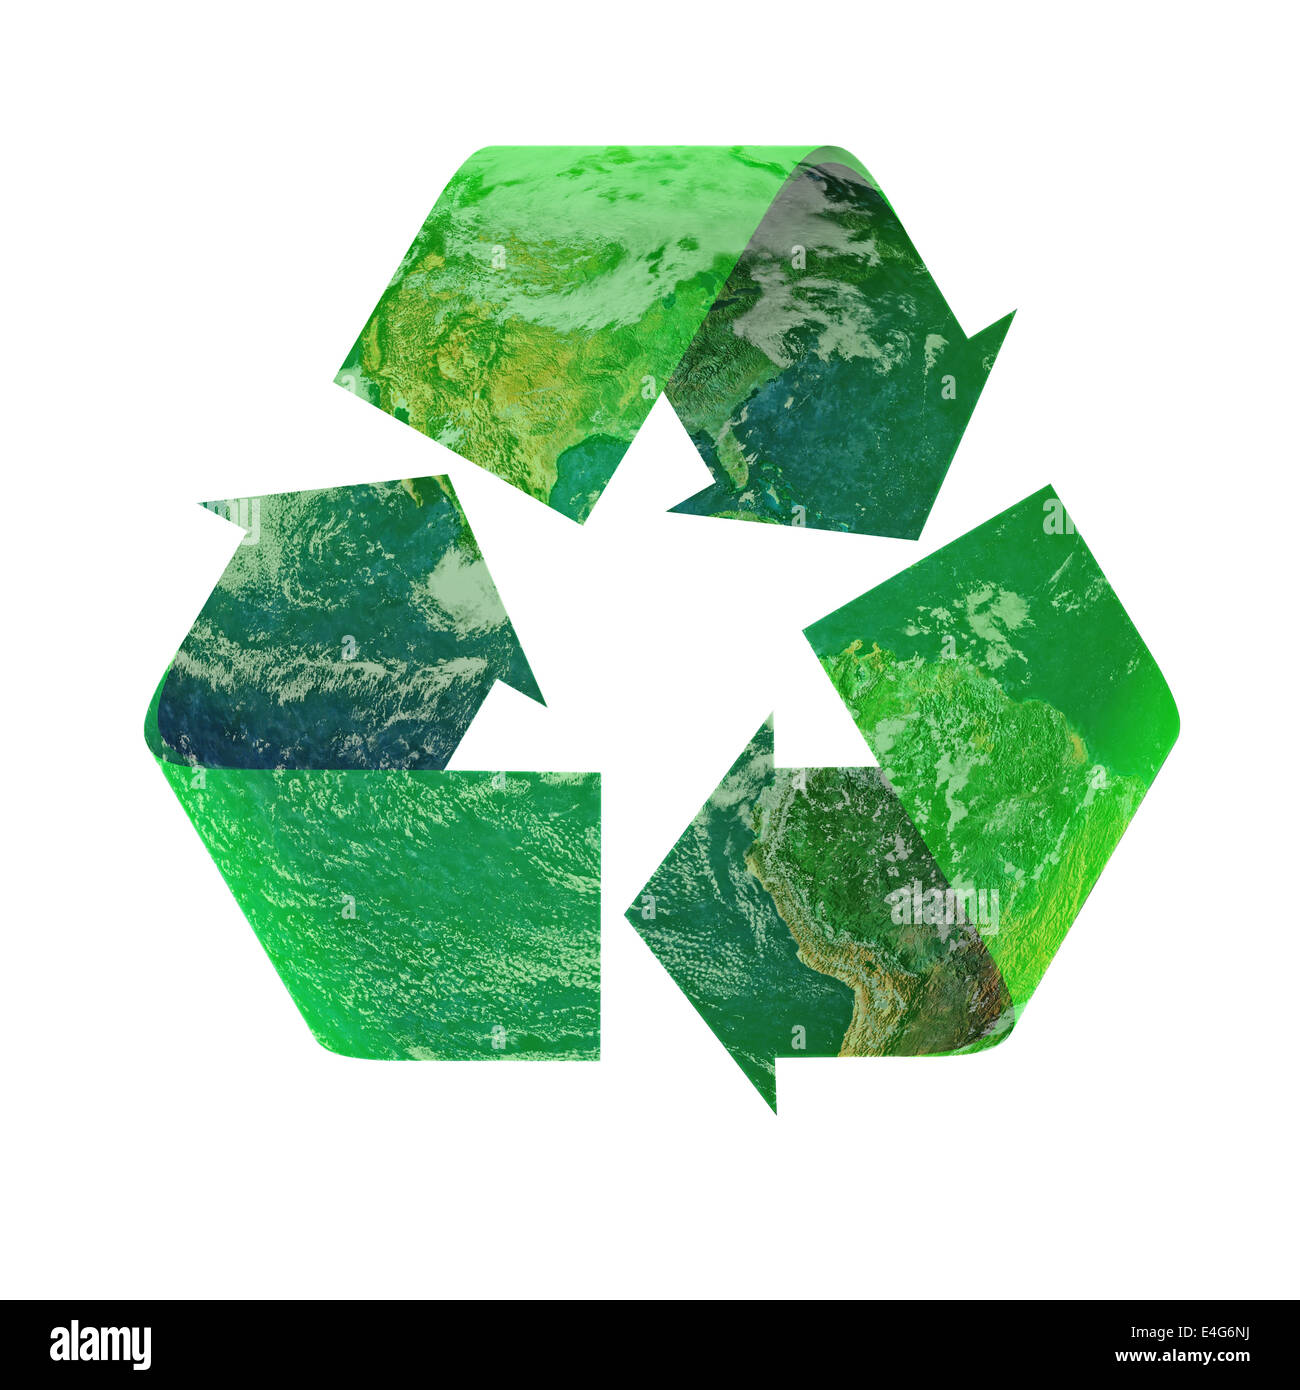 Recycle Symbol Clouds Stock Photos Recycle Symbol Clouds Stock